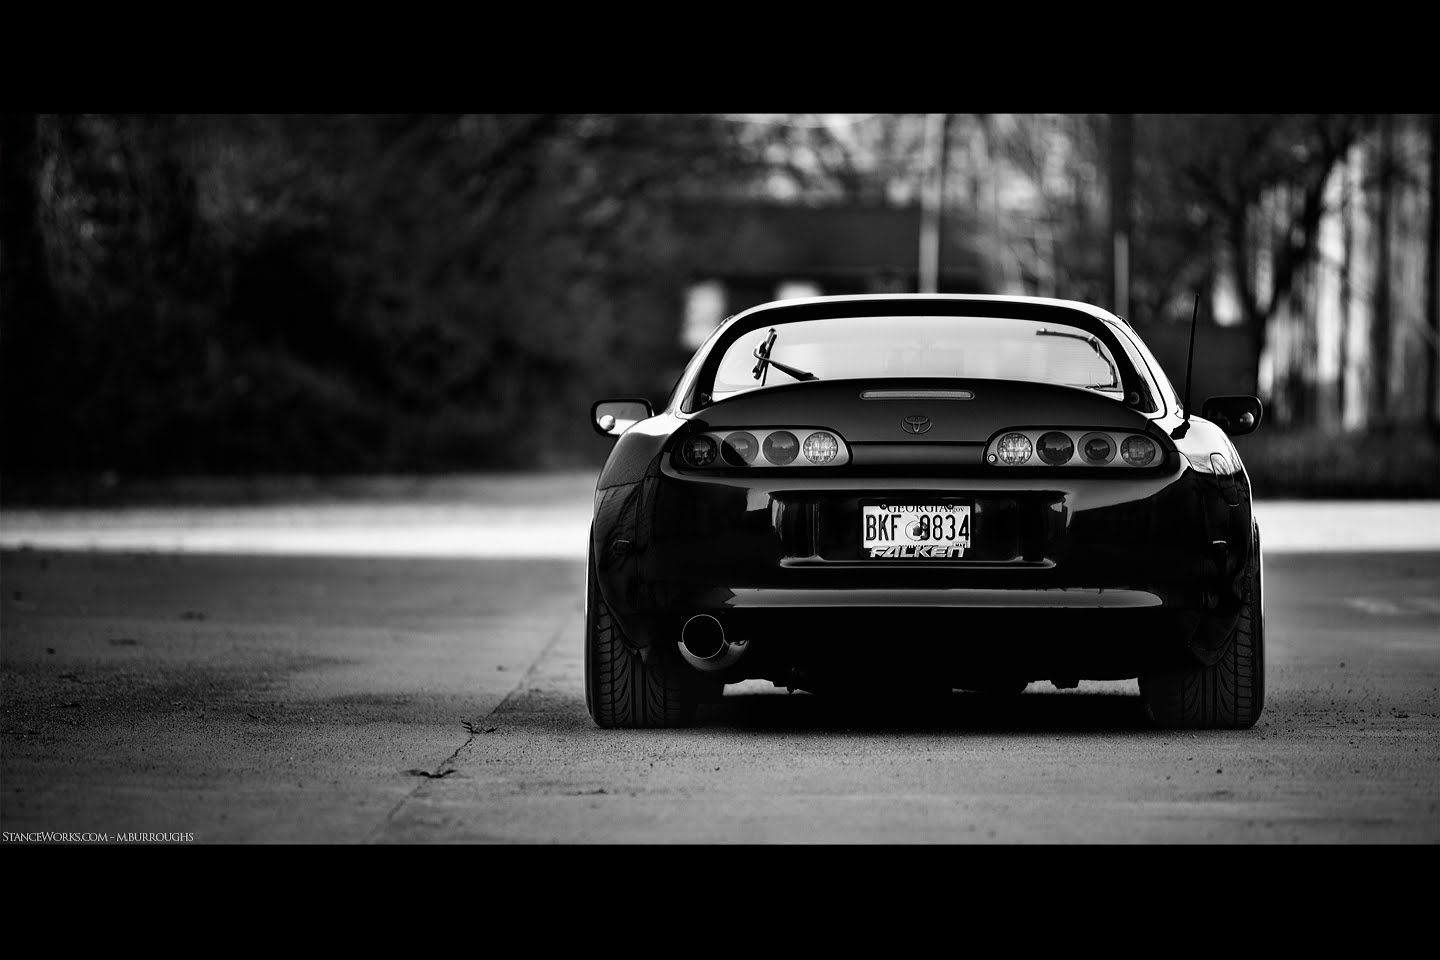 toyota supra mkiv rear black white toyota sport cars pinterest toyota supra toyota. Black Bedroom Furniture Sets. Home Design Ideas